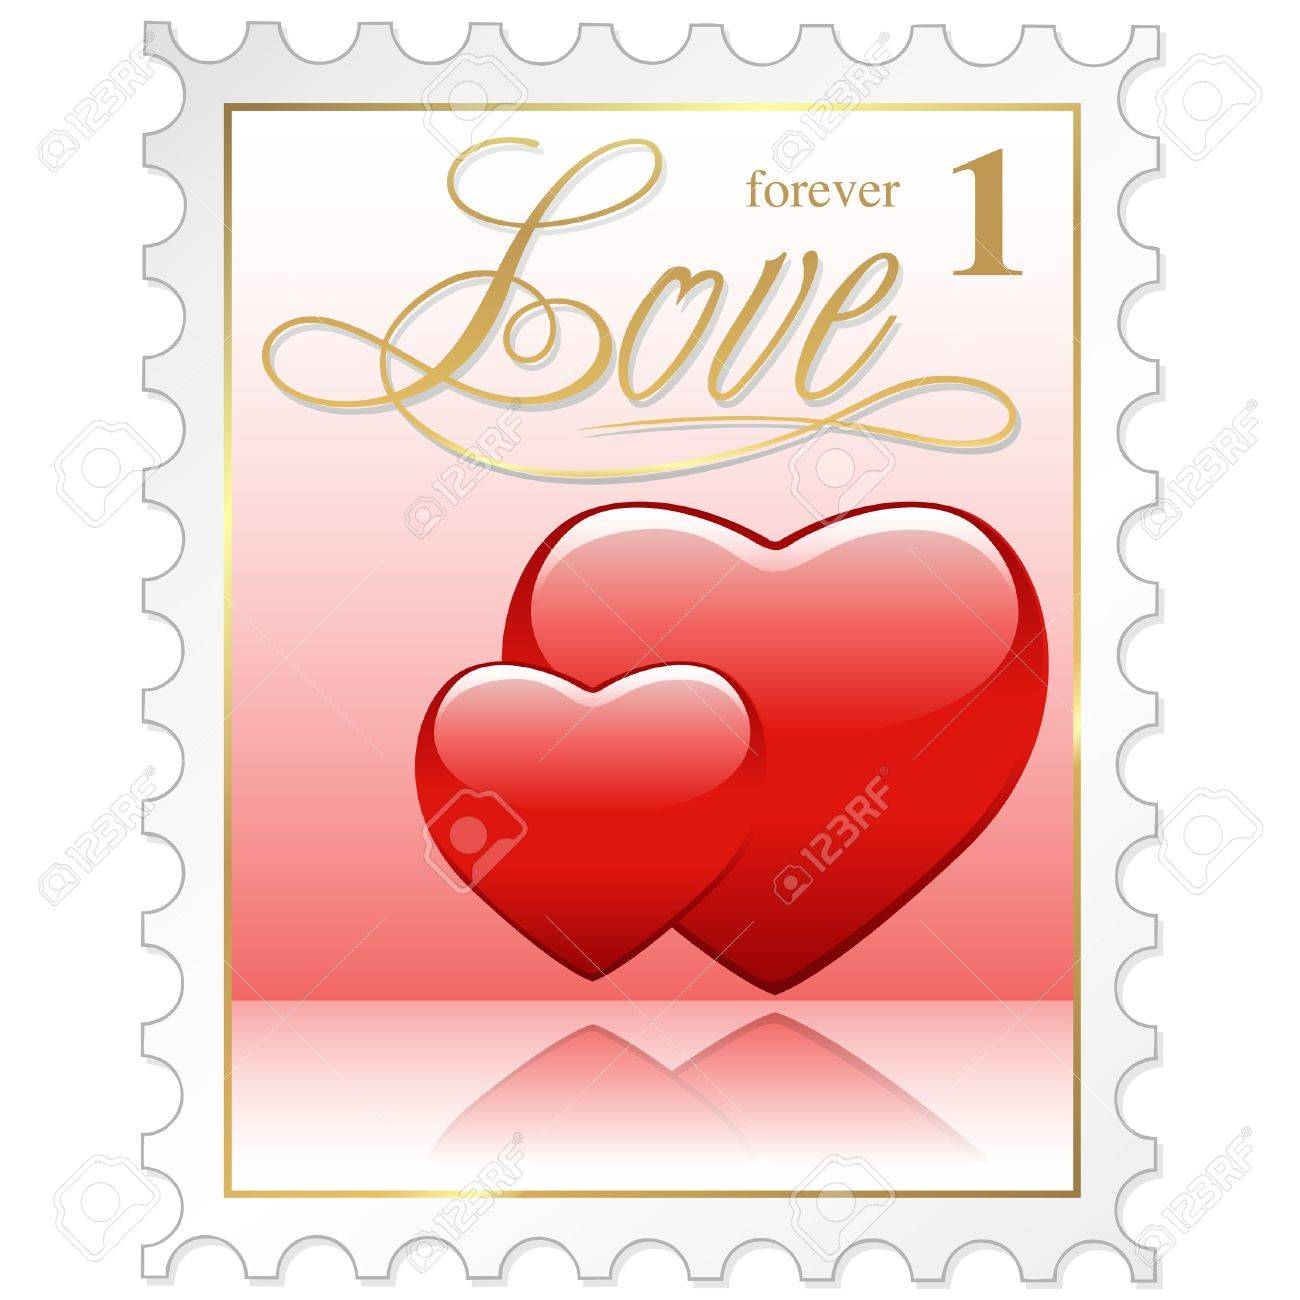 Love Stamp - colored illustration with heart Stock Vector - 8903846